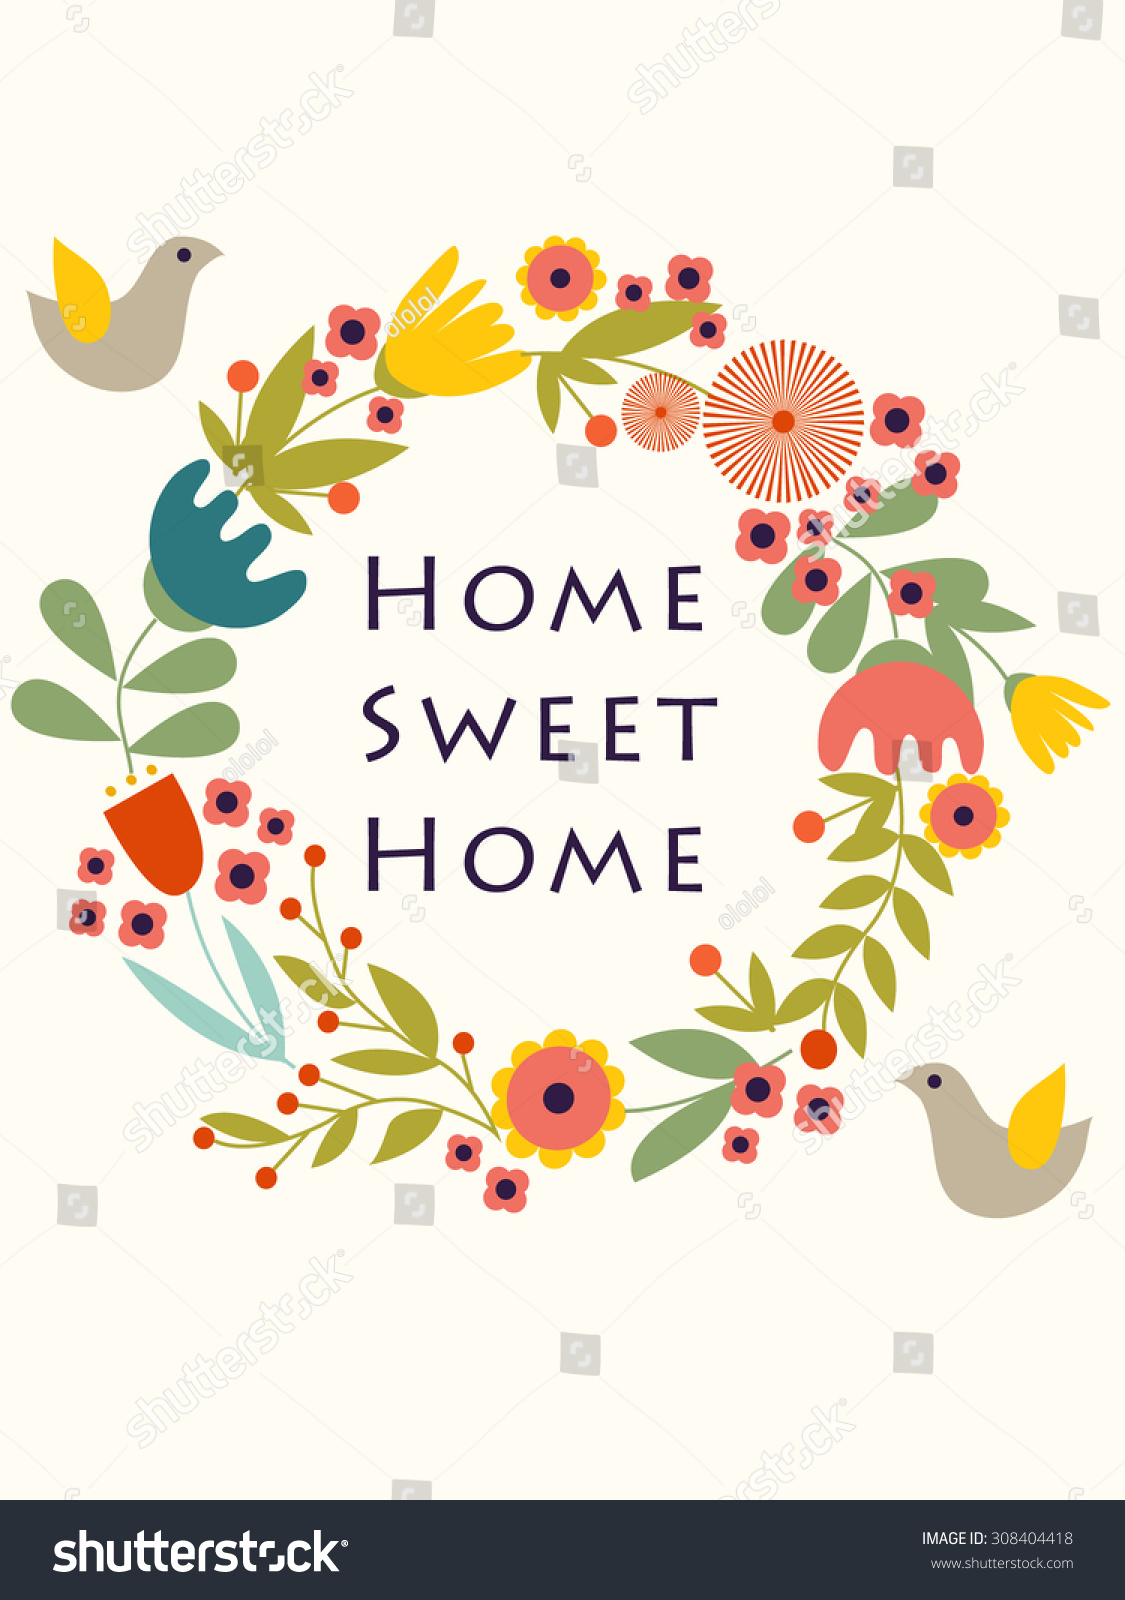 Home Sweet Home Poster Eps 8 Stock Vector Royalty Free 308404418